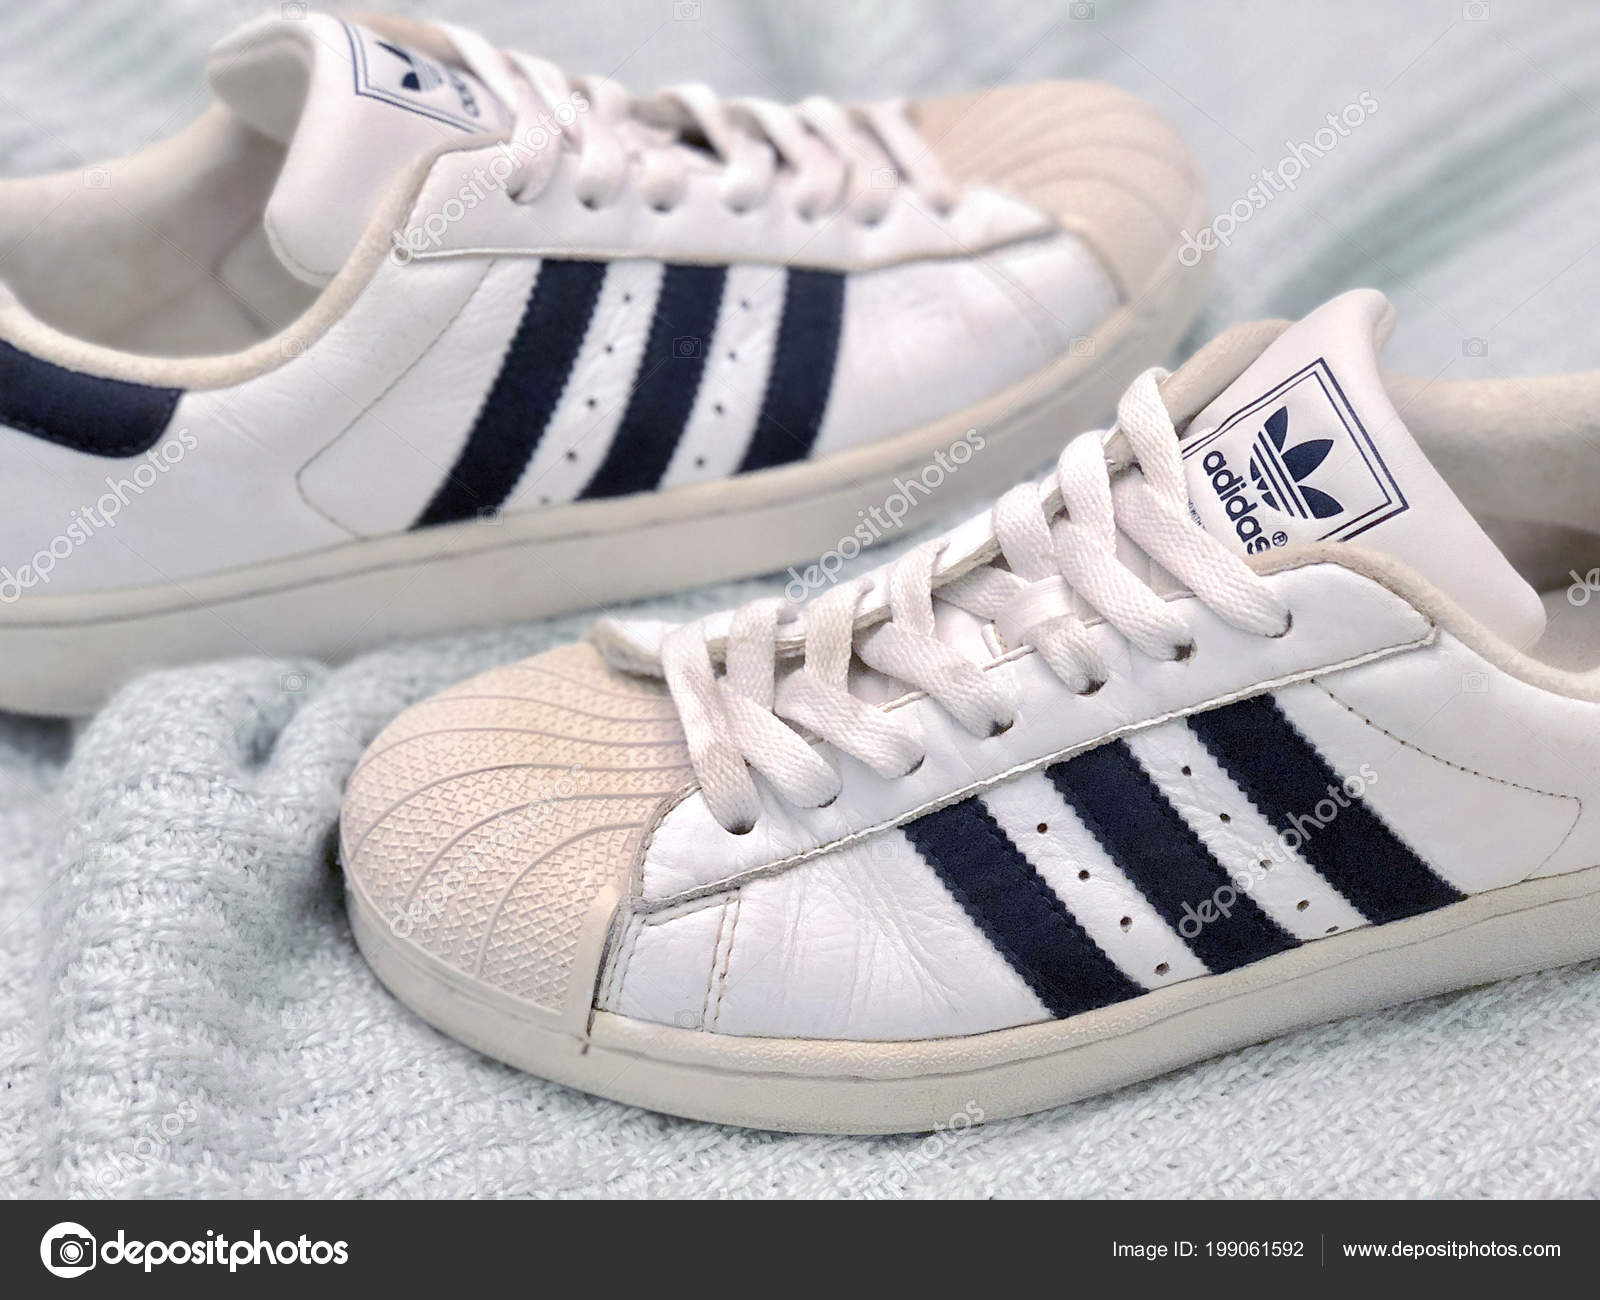 adidas superstar shoes 2017